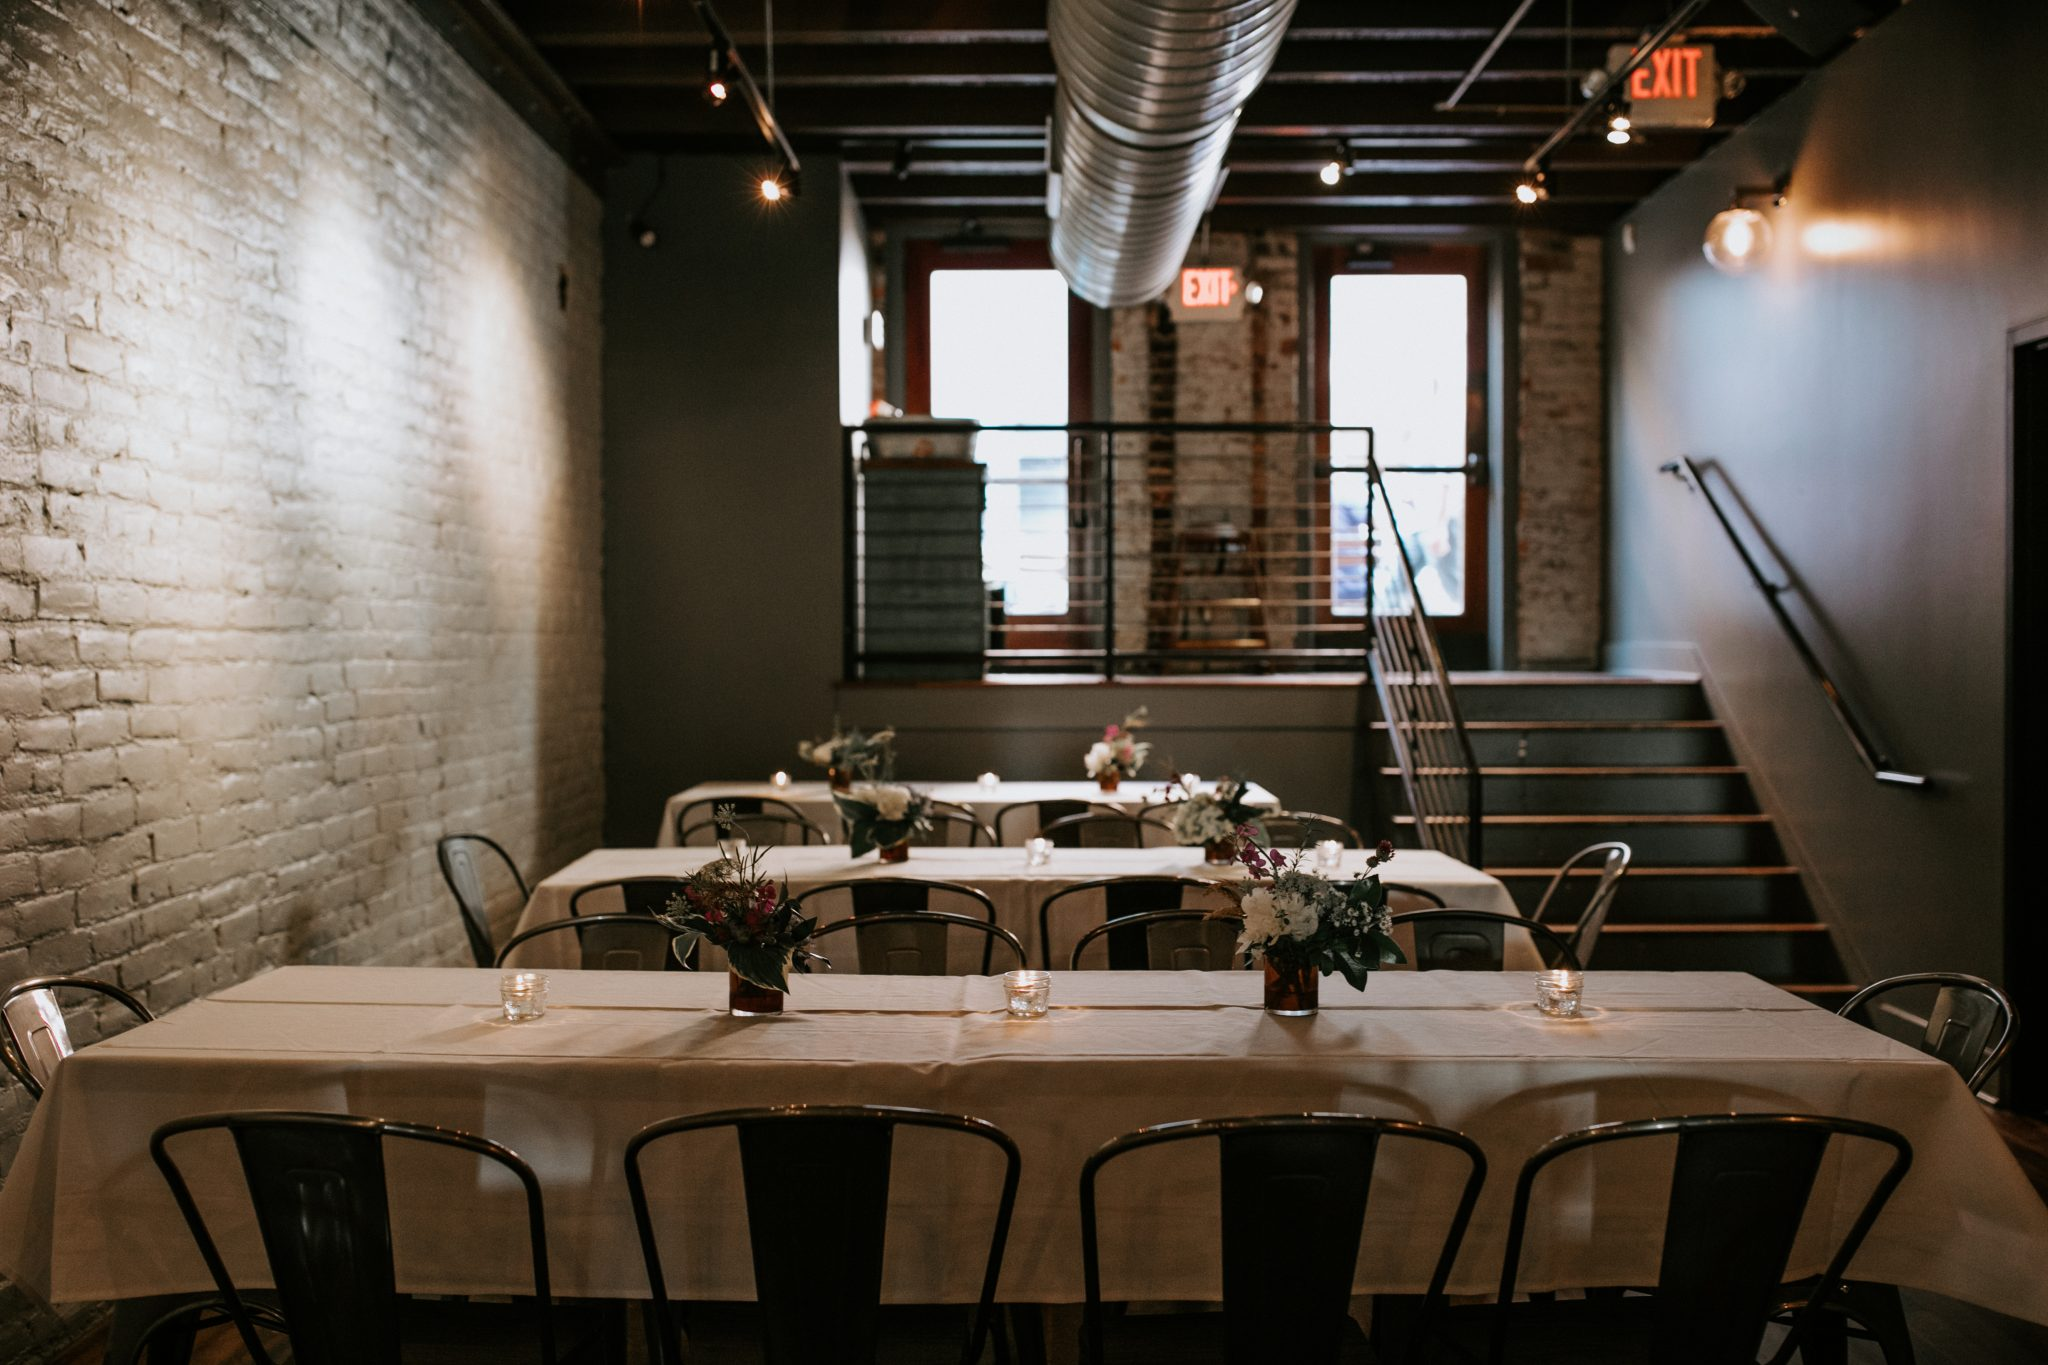 Three rows of minimalist wedding reception tables with simple DIY floral arrangements, candles, and white linens.